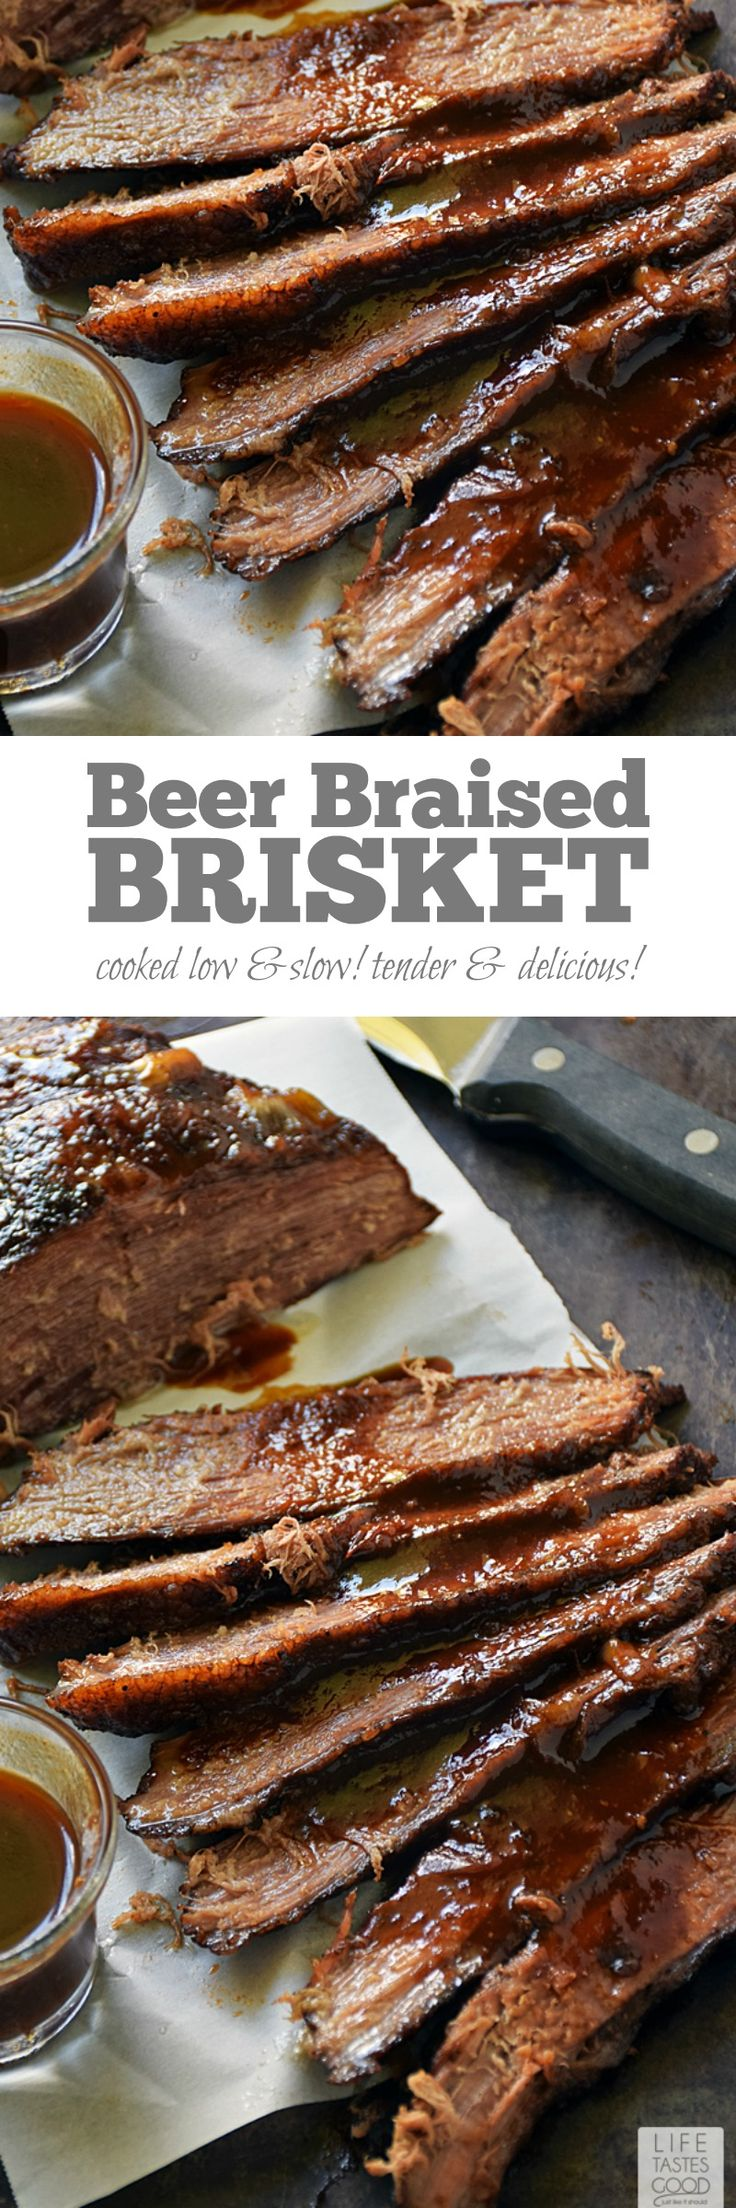 Beer Braised Beef Brisket | by Life Tastes Good is cooked low and slow for maximum deliciousness. The brisket is braised in stout beer that cooks down and leaves behind a deep, rich flavor that mingles nicely with the natural flavor of the beef. #LTGrecipes #SundaySupper @beeffordinner #ad